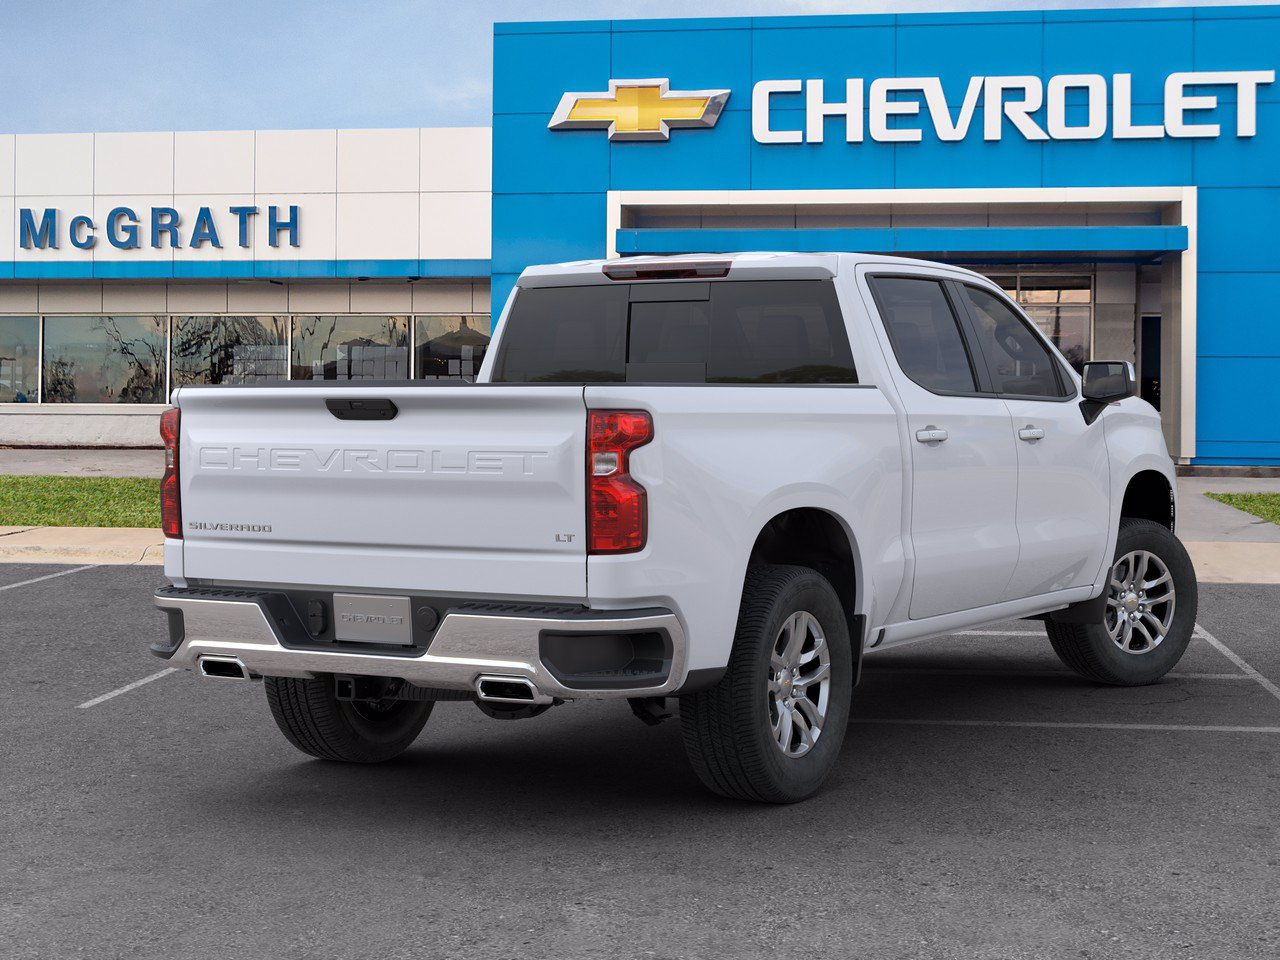 2020 Chevrolet Silverado 1500 Crew Cab 4x4, Pickup #C201509 - photo 2